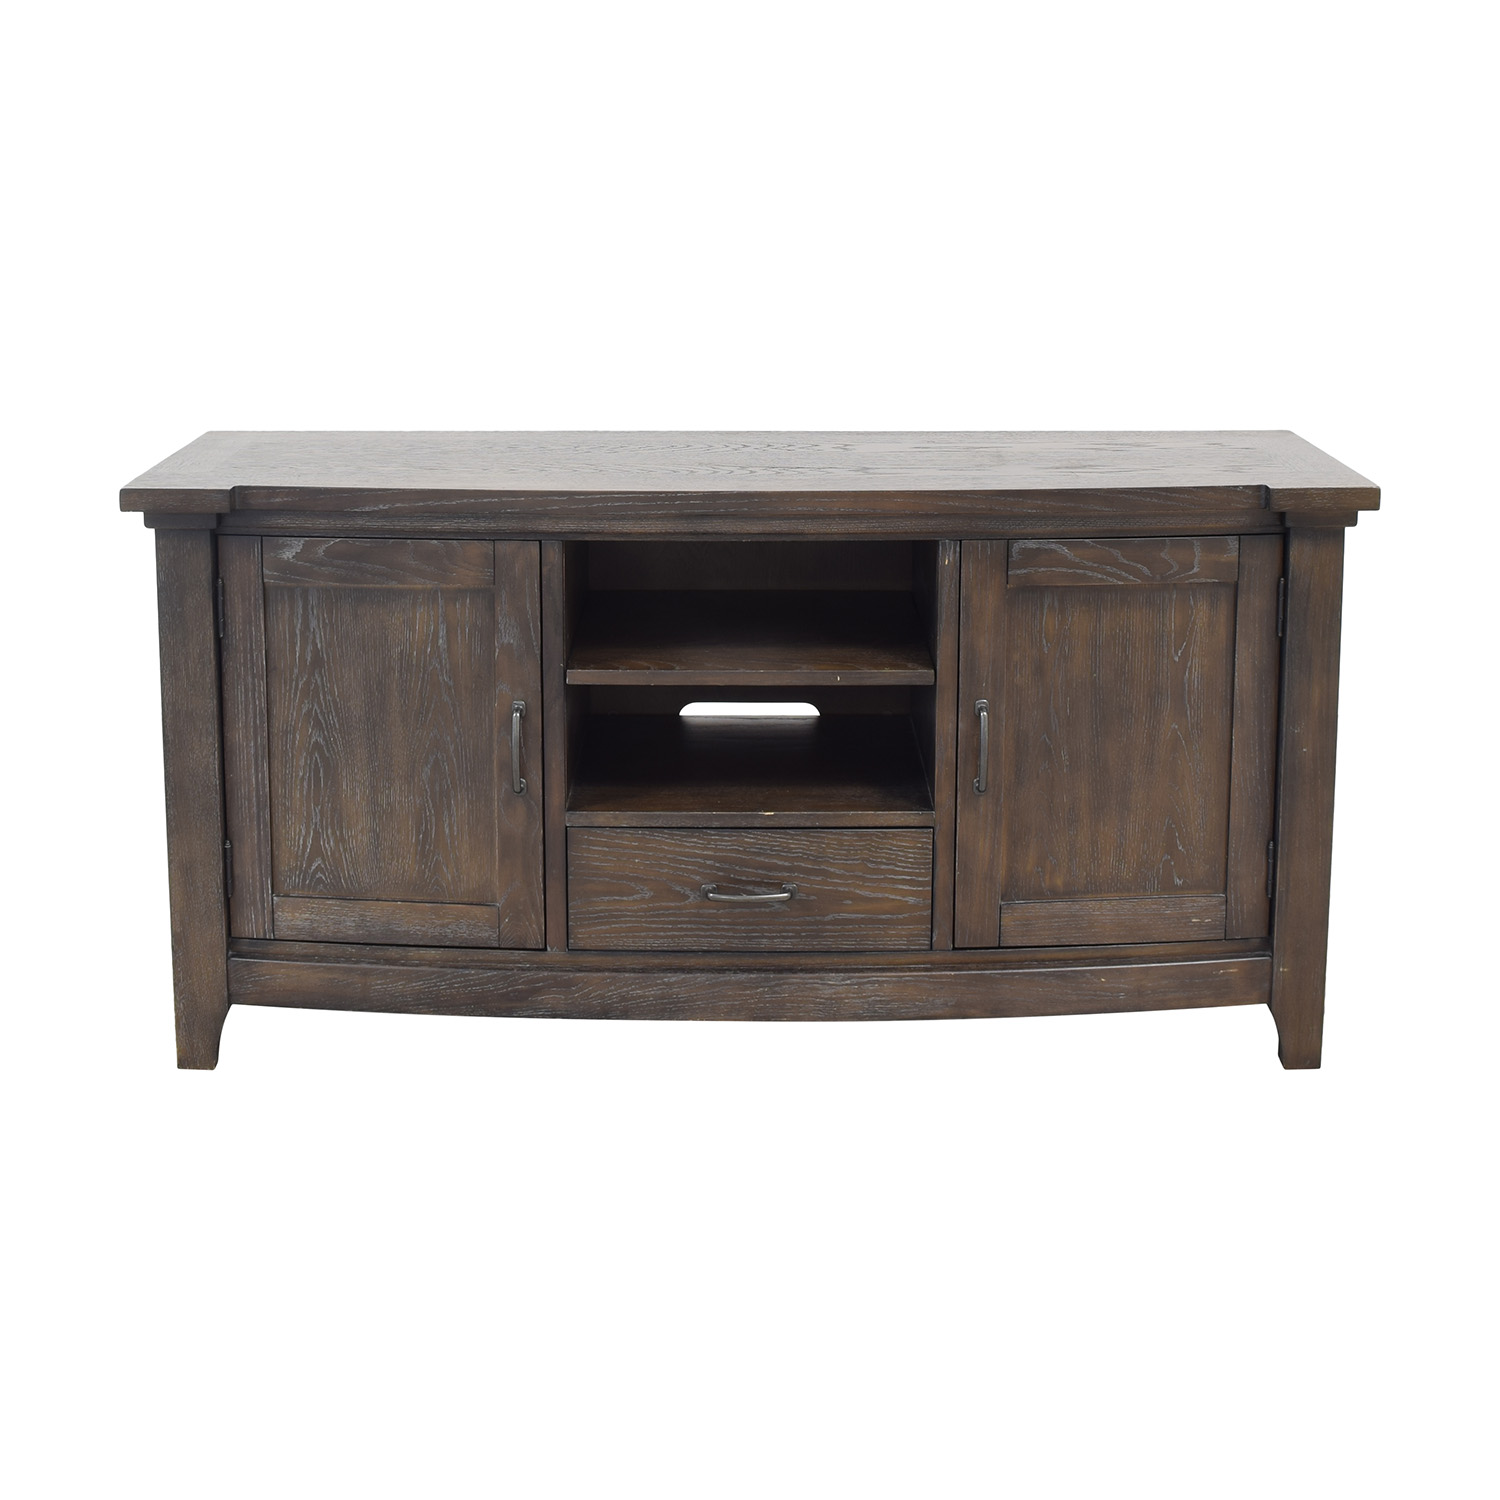 Broyhill Furniture Broyhill Furniture Media Stand pa